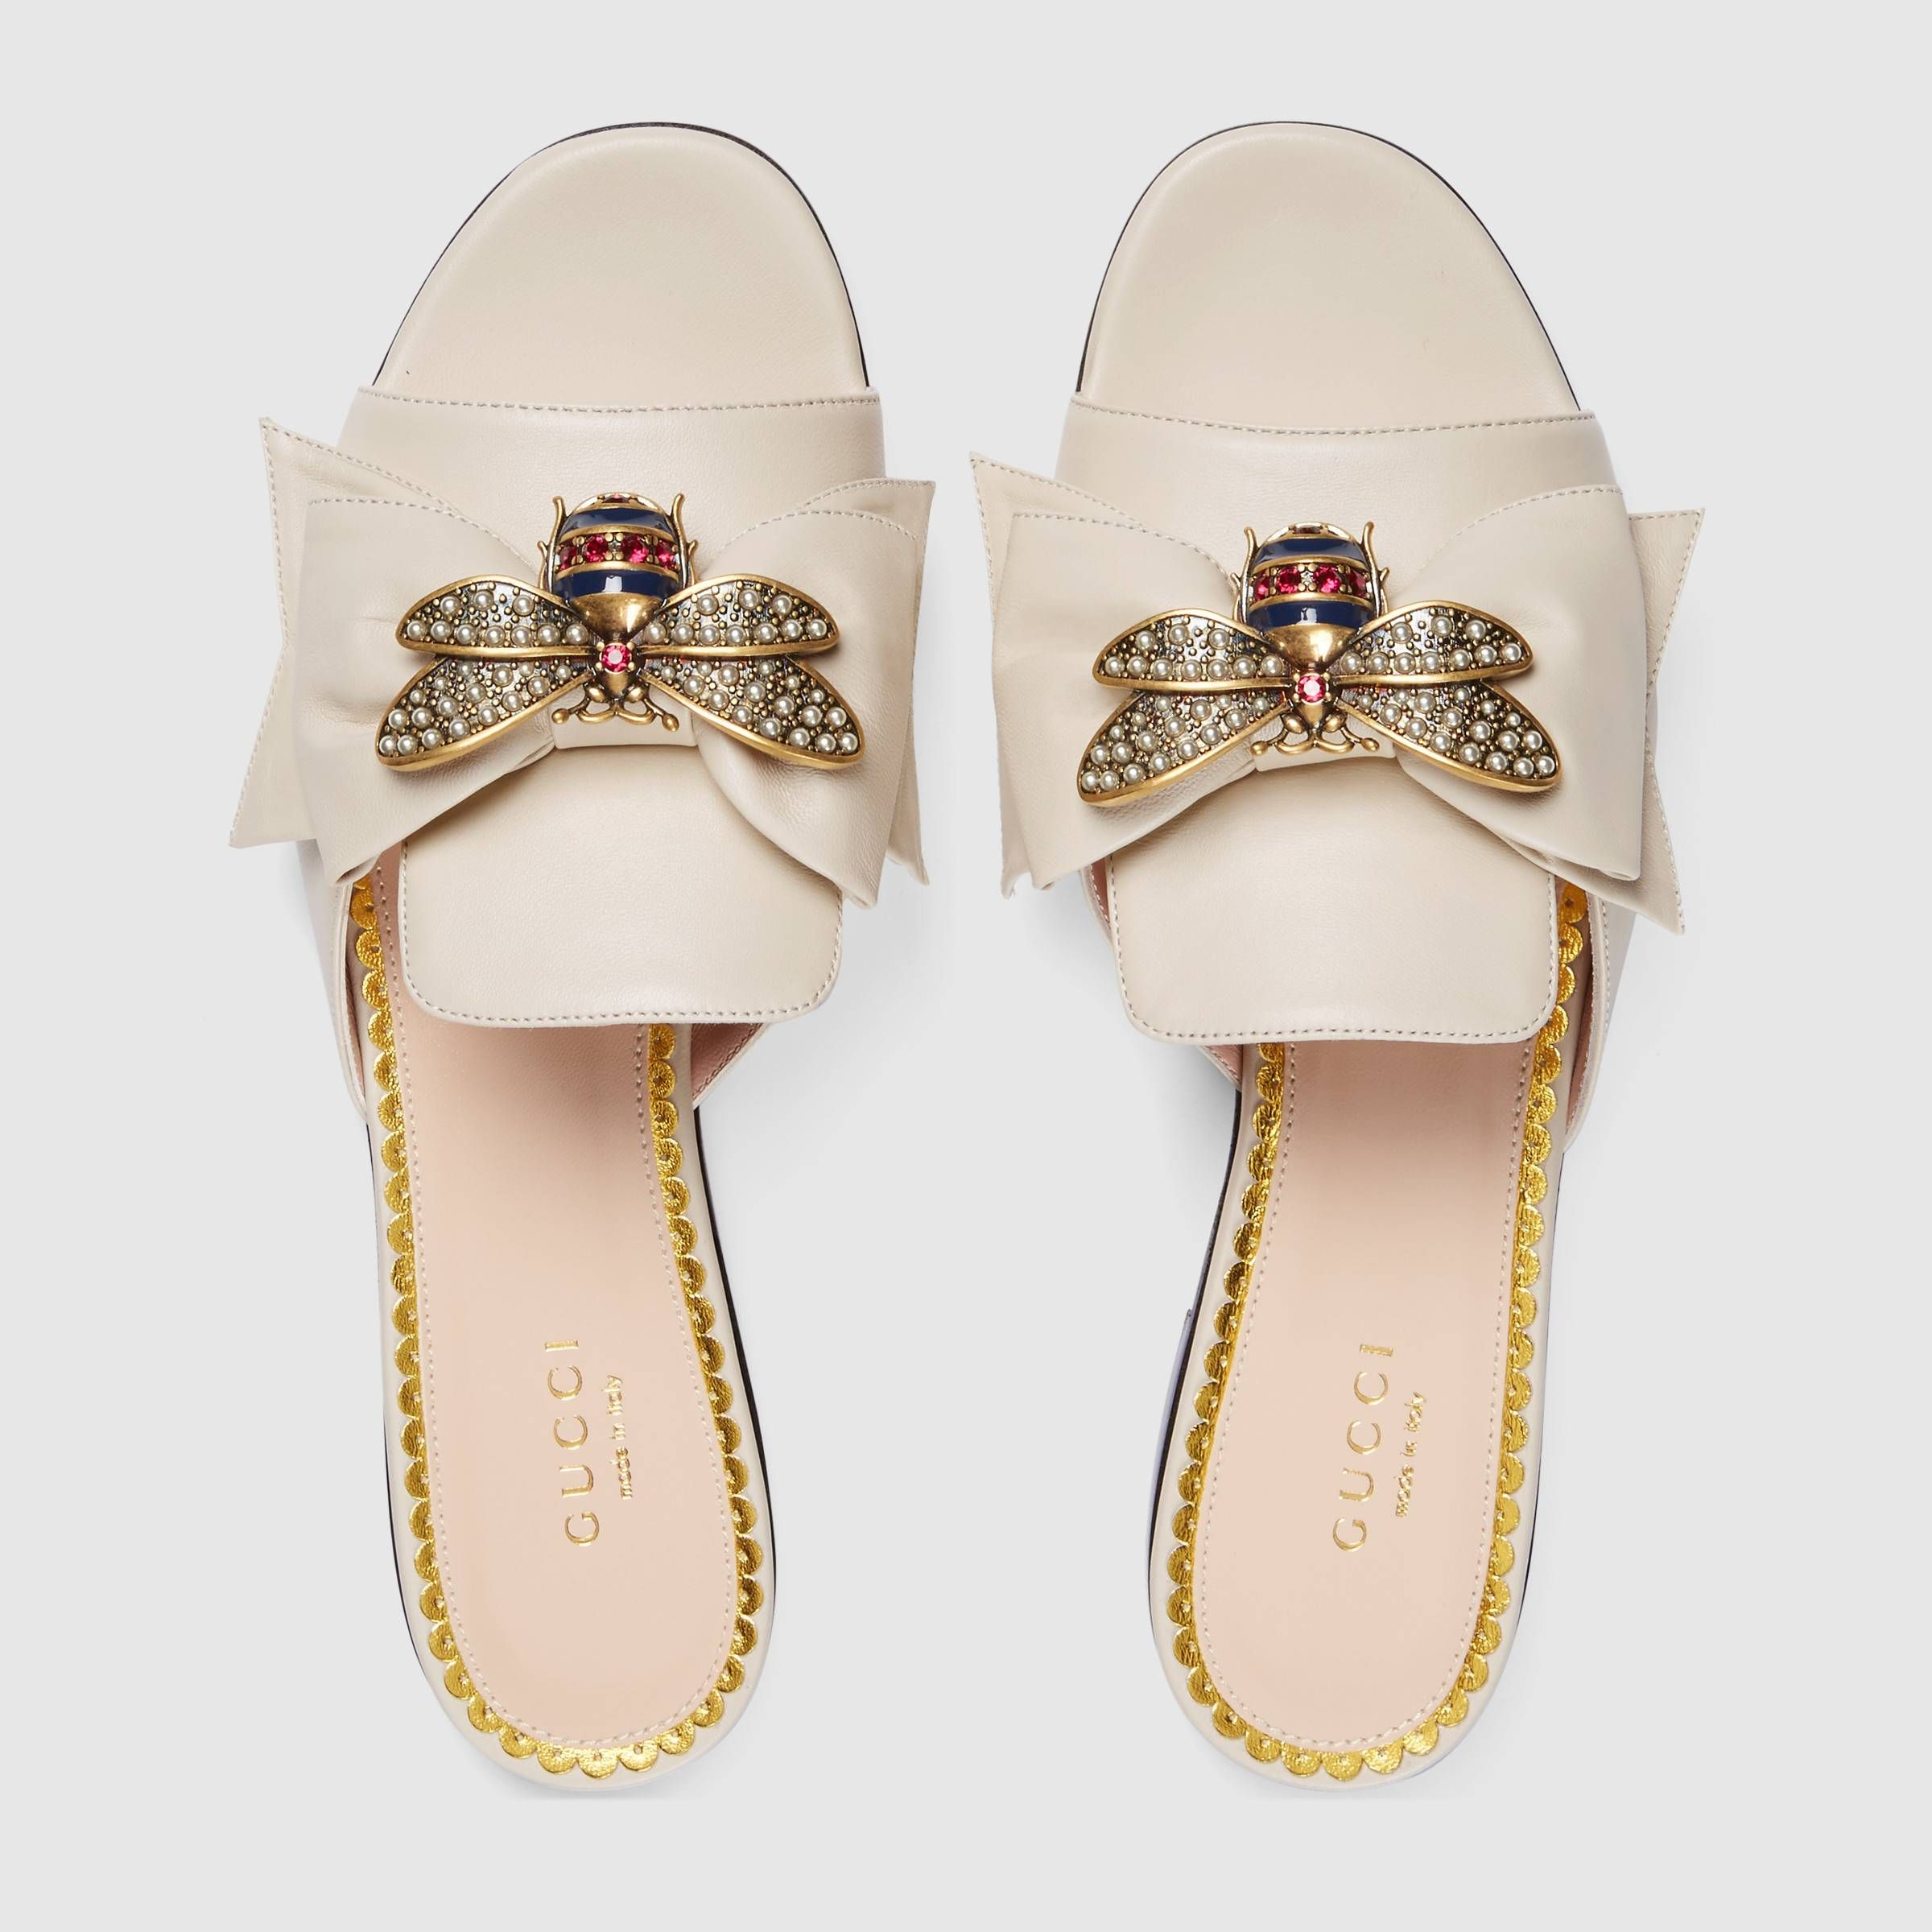 Leather slide with bow - Gucci Women's